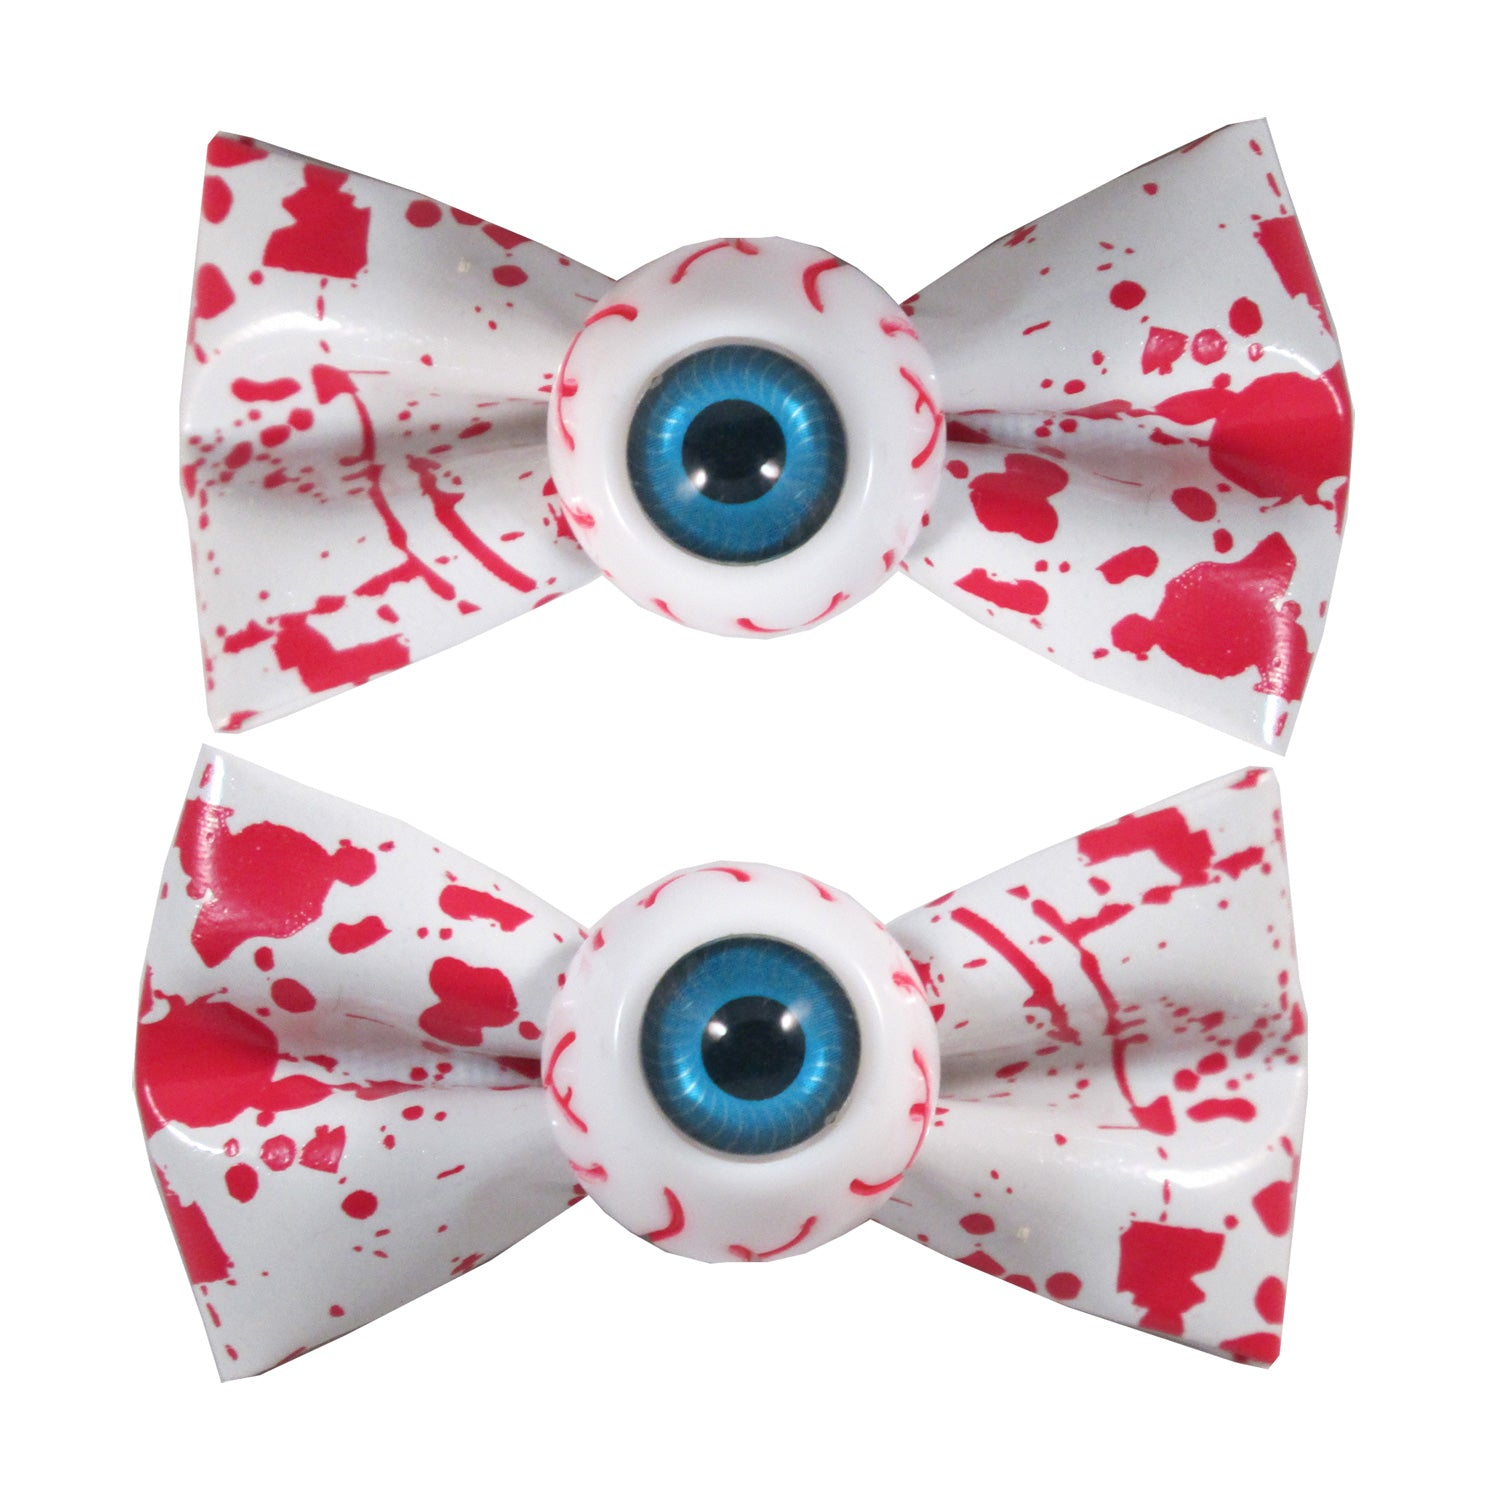 Eyeball Hairbow Slides Blood Splat White